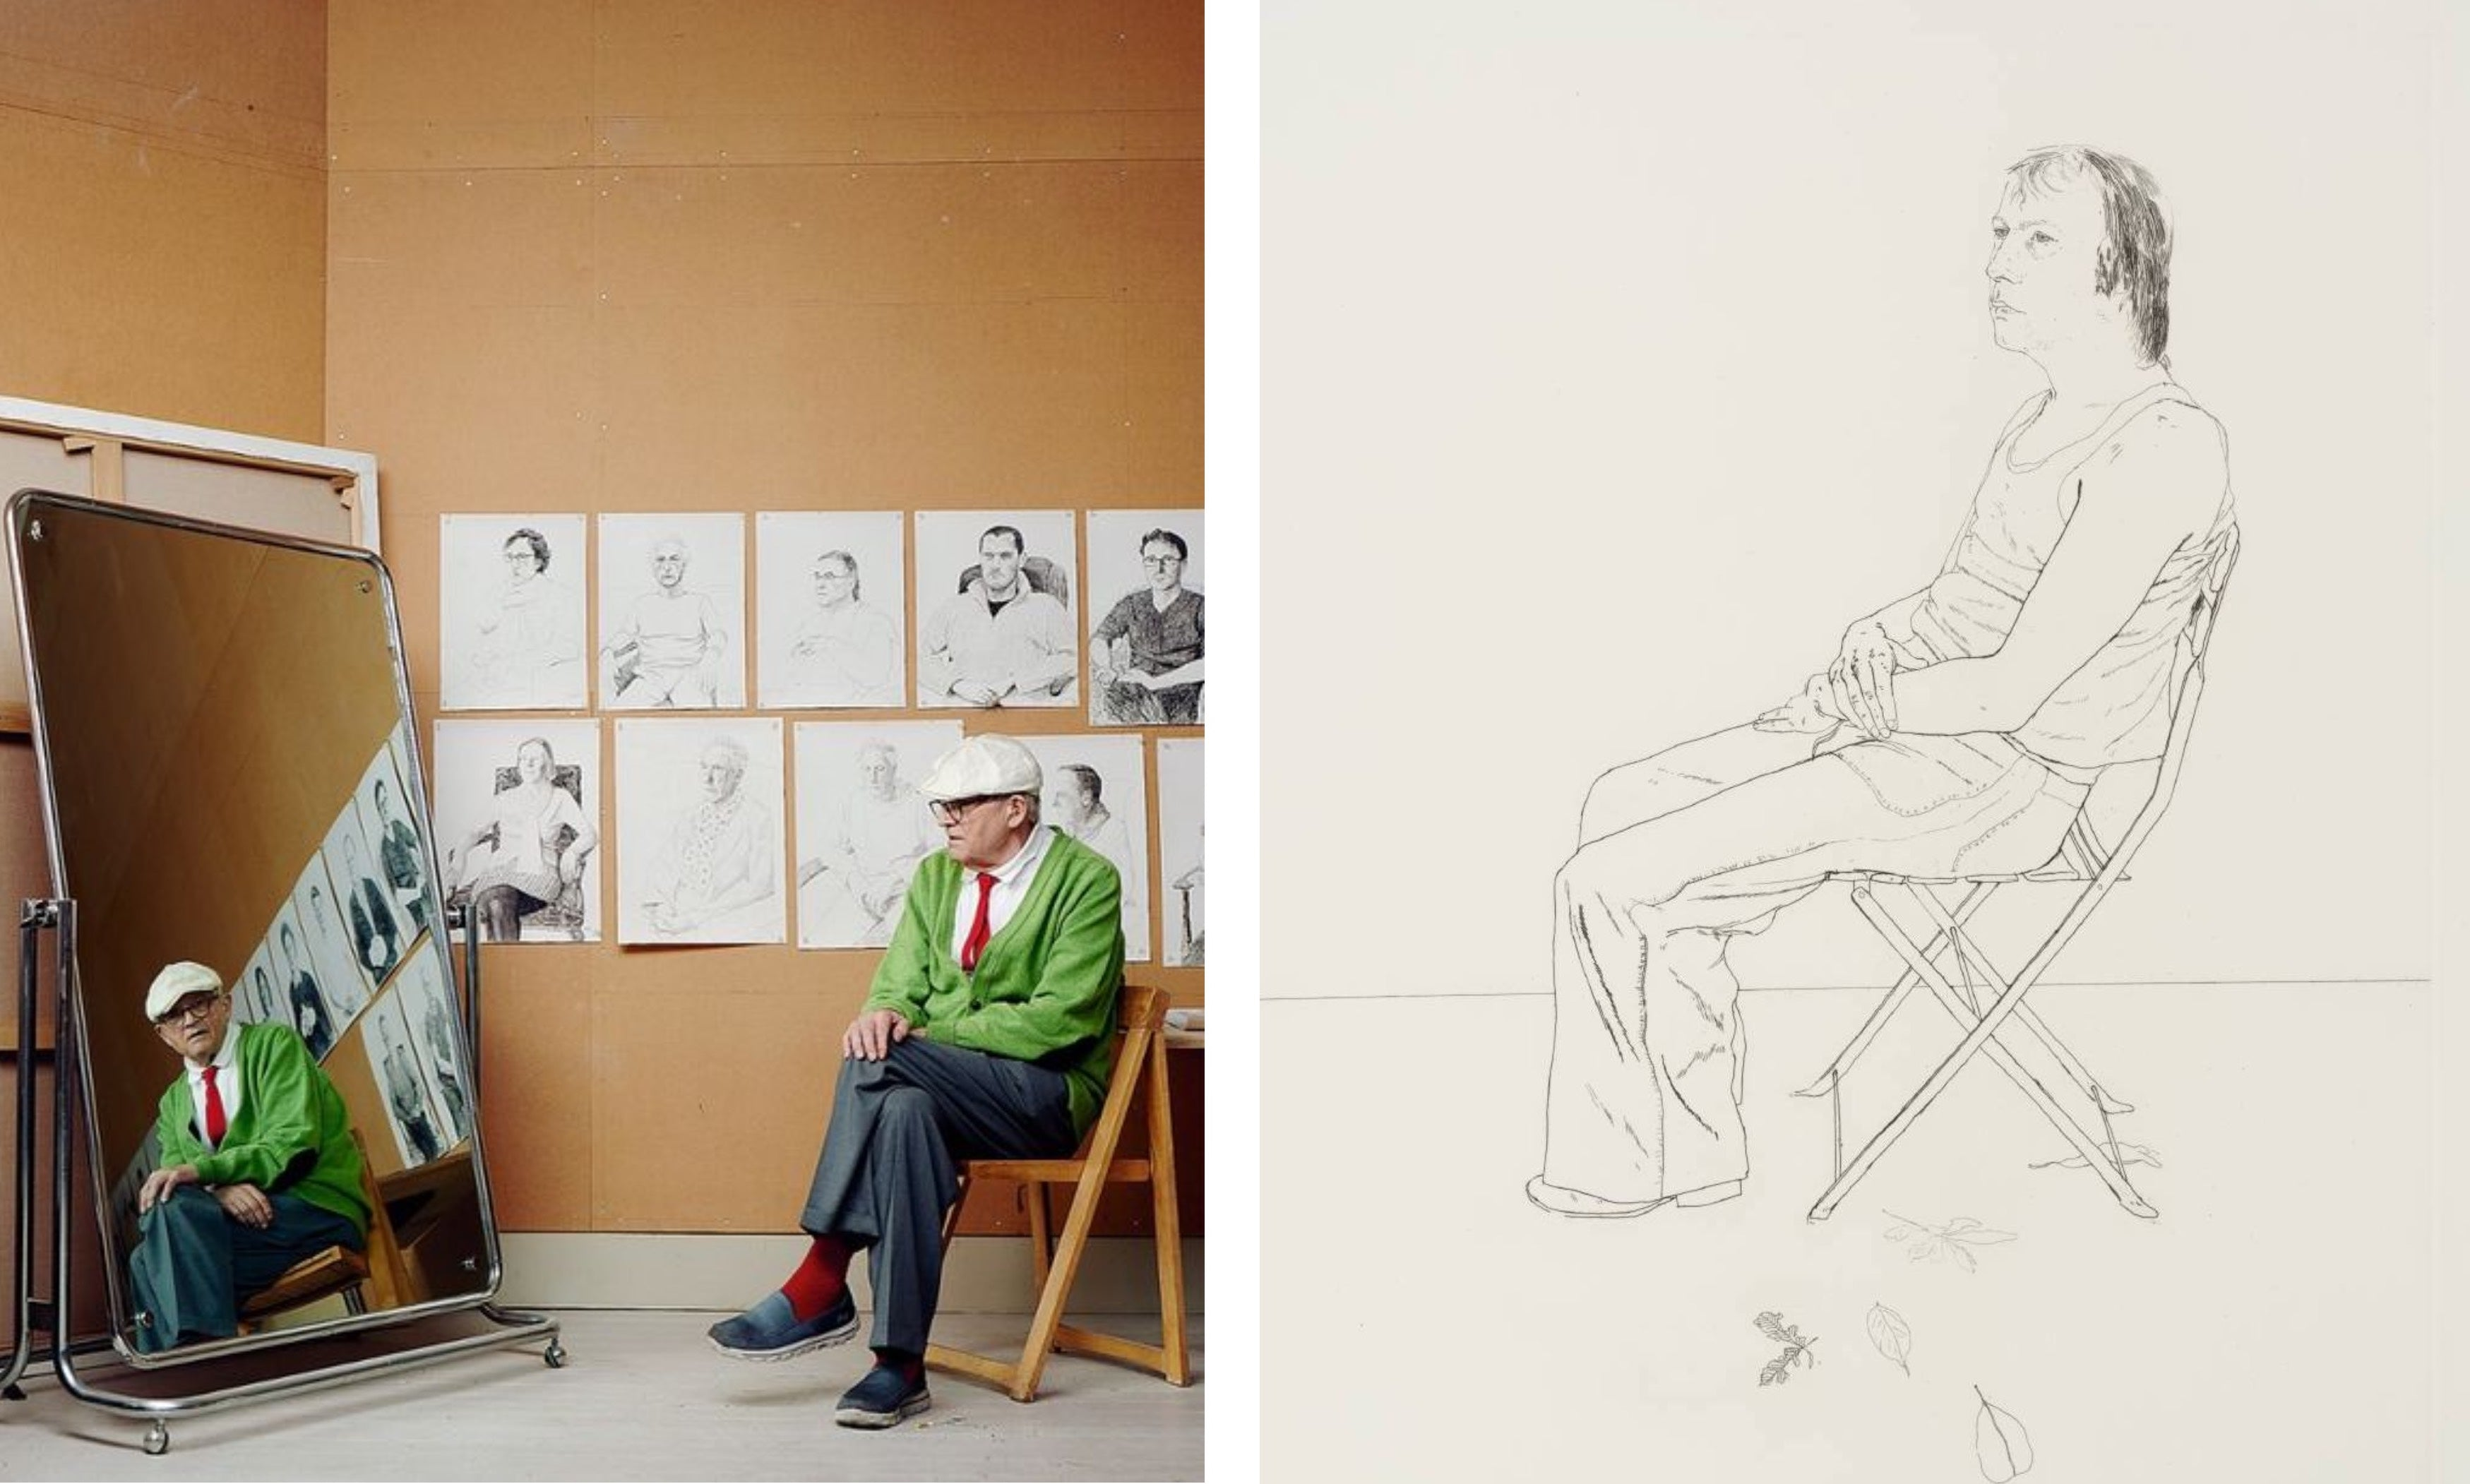 Left: Hockney in his studio, The Guardian, 2016. Right: Mo with Five Leaves, 1971